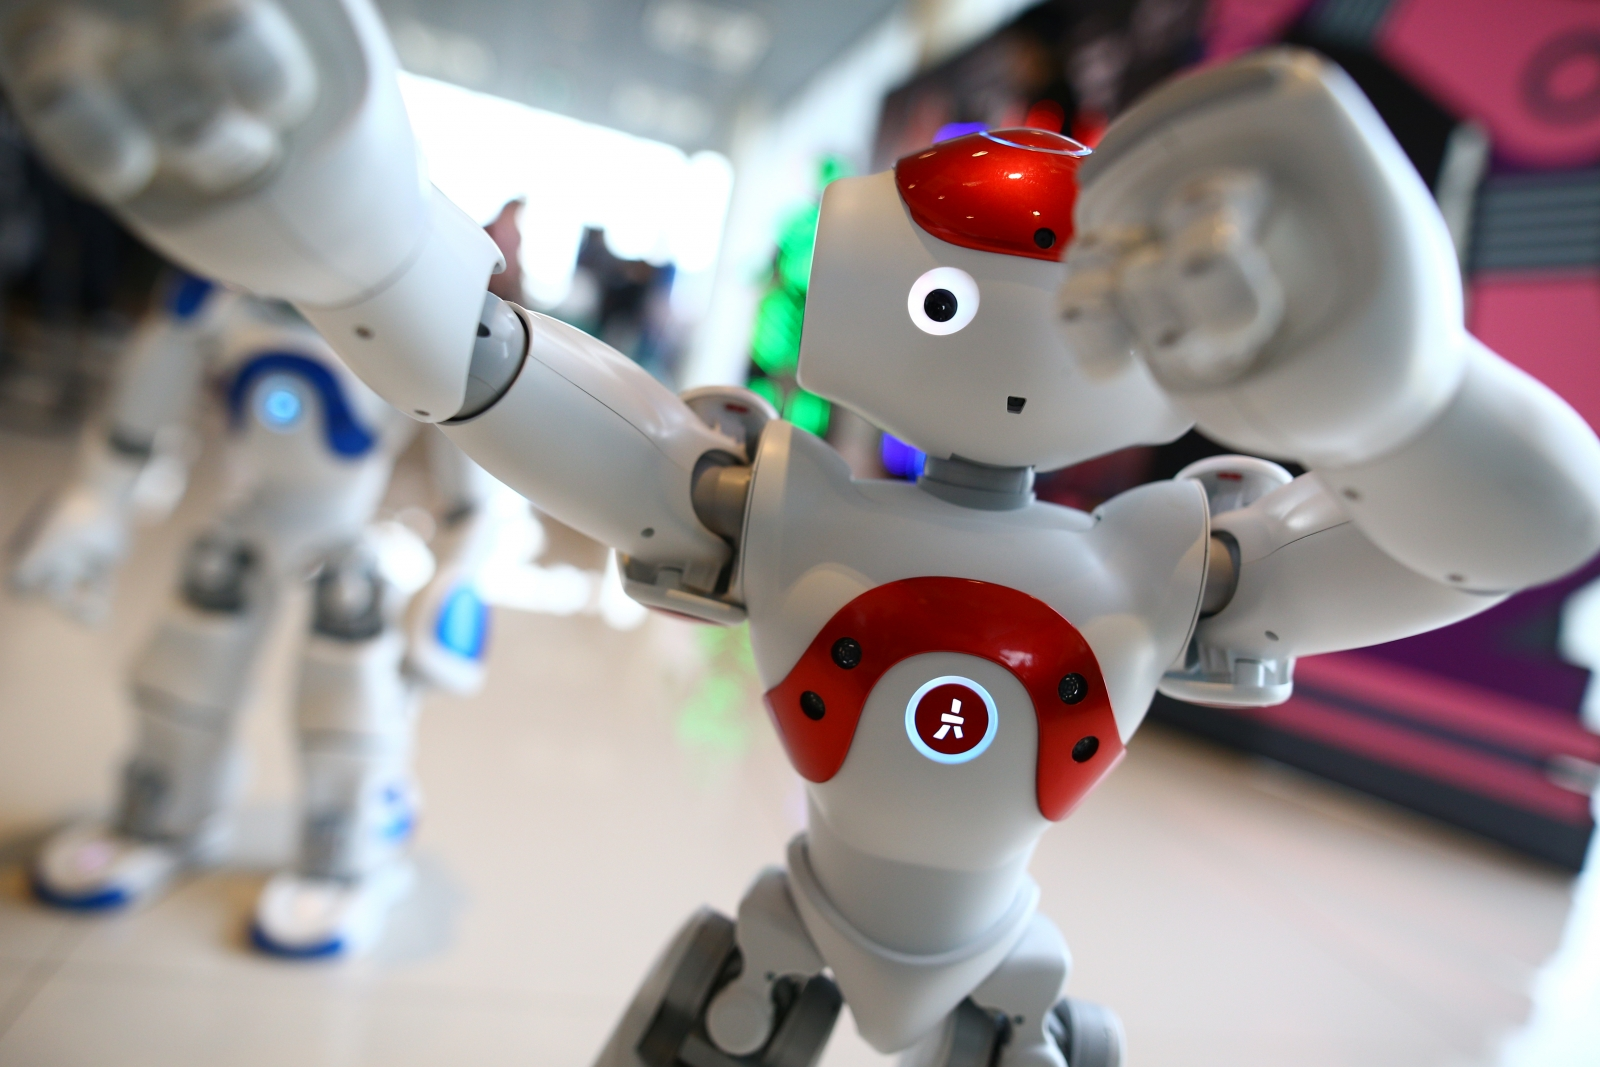 Robots could learn from each other